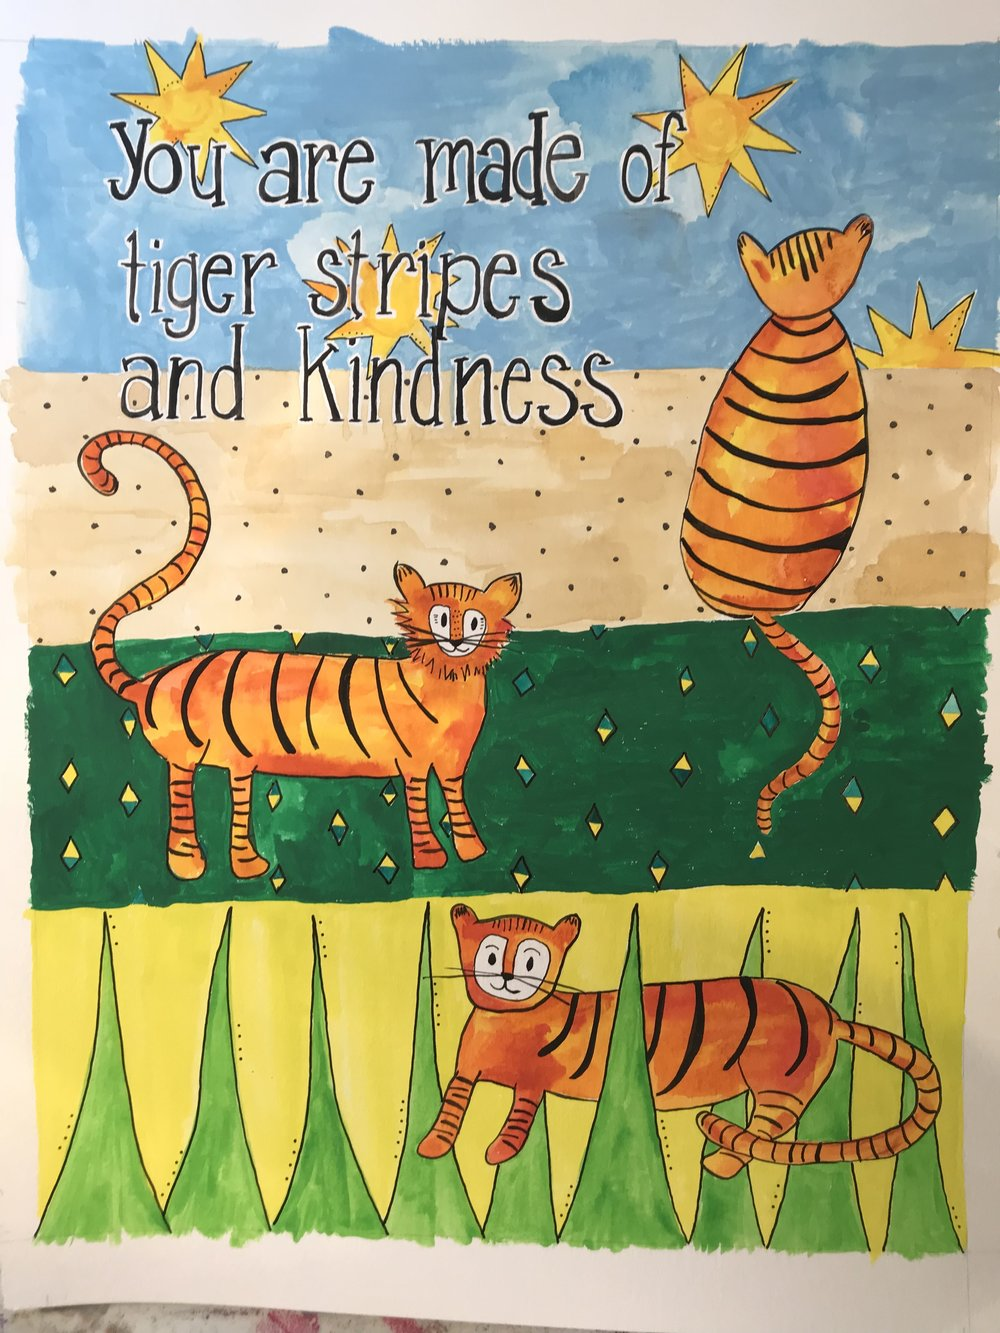 "Tiger Stripes and Kindness, 2018. 11x14"" gouache on watercolor. Missy Elam Chavez, all rights reserved."